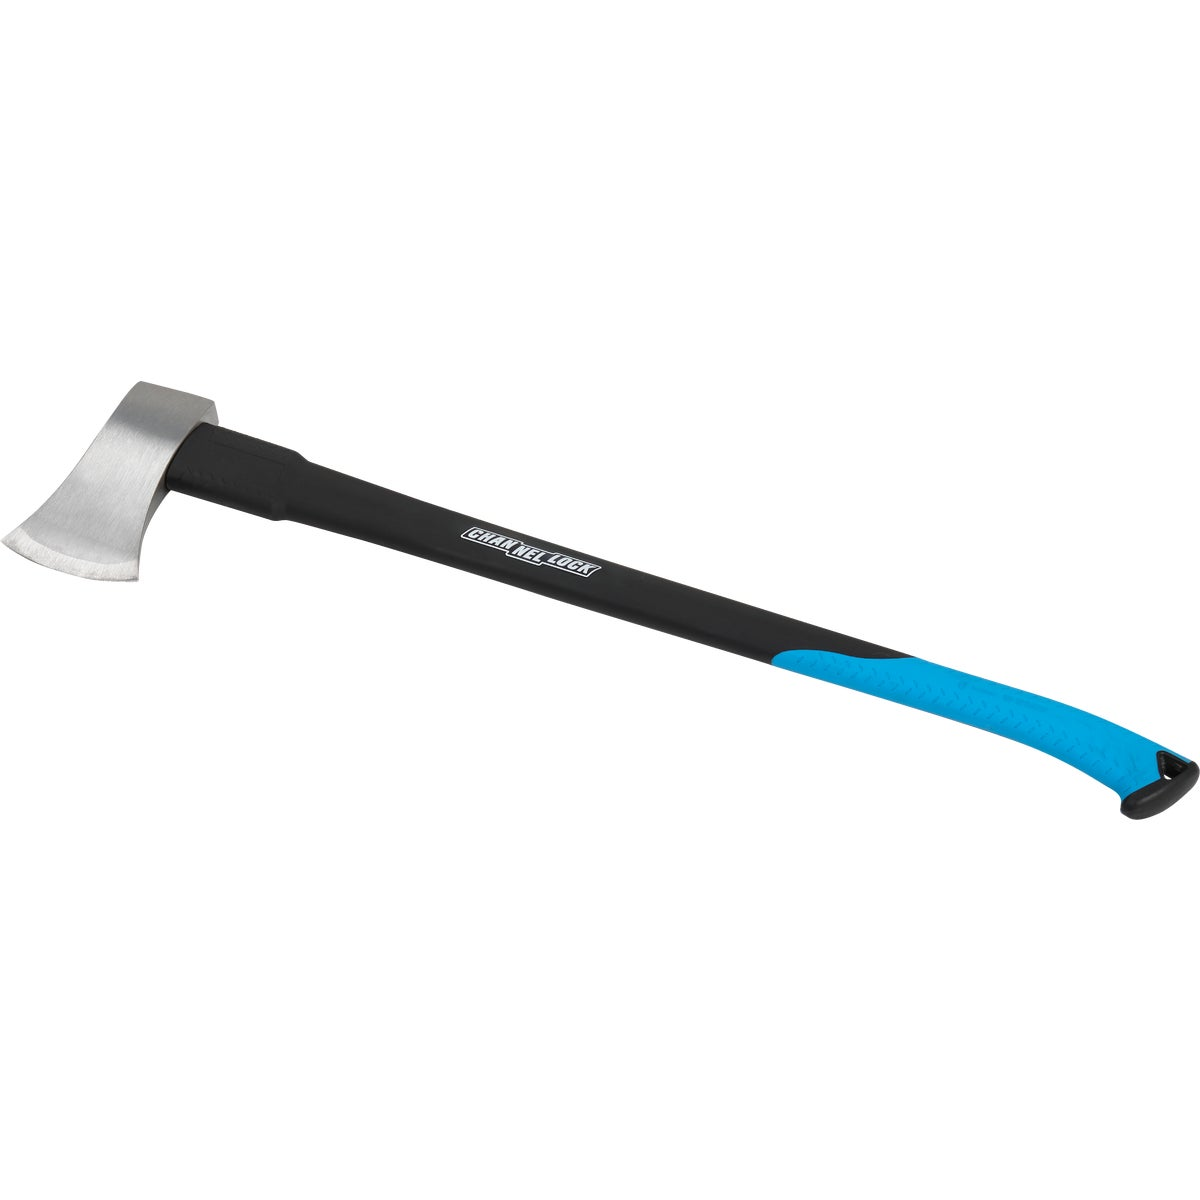 CHANNELLOCK 3-1/2LB AXE - 361021 by Channellock®